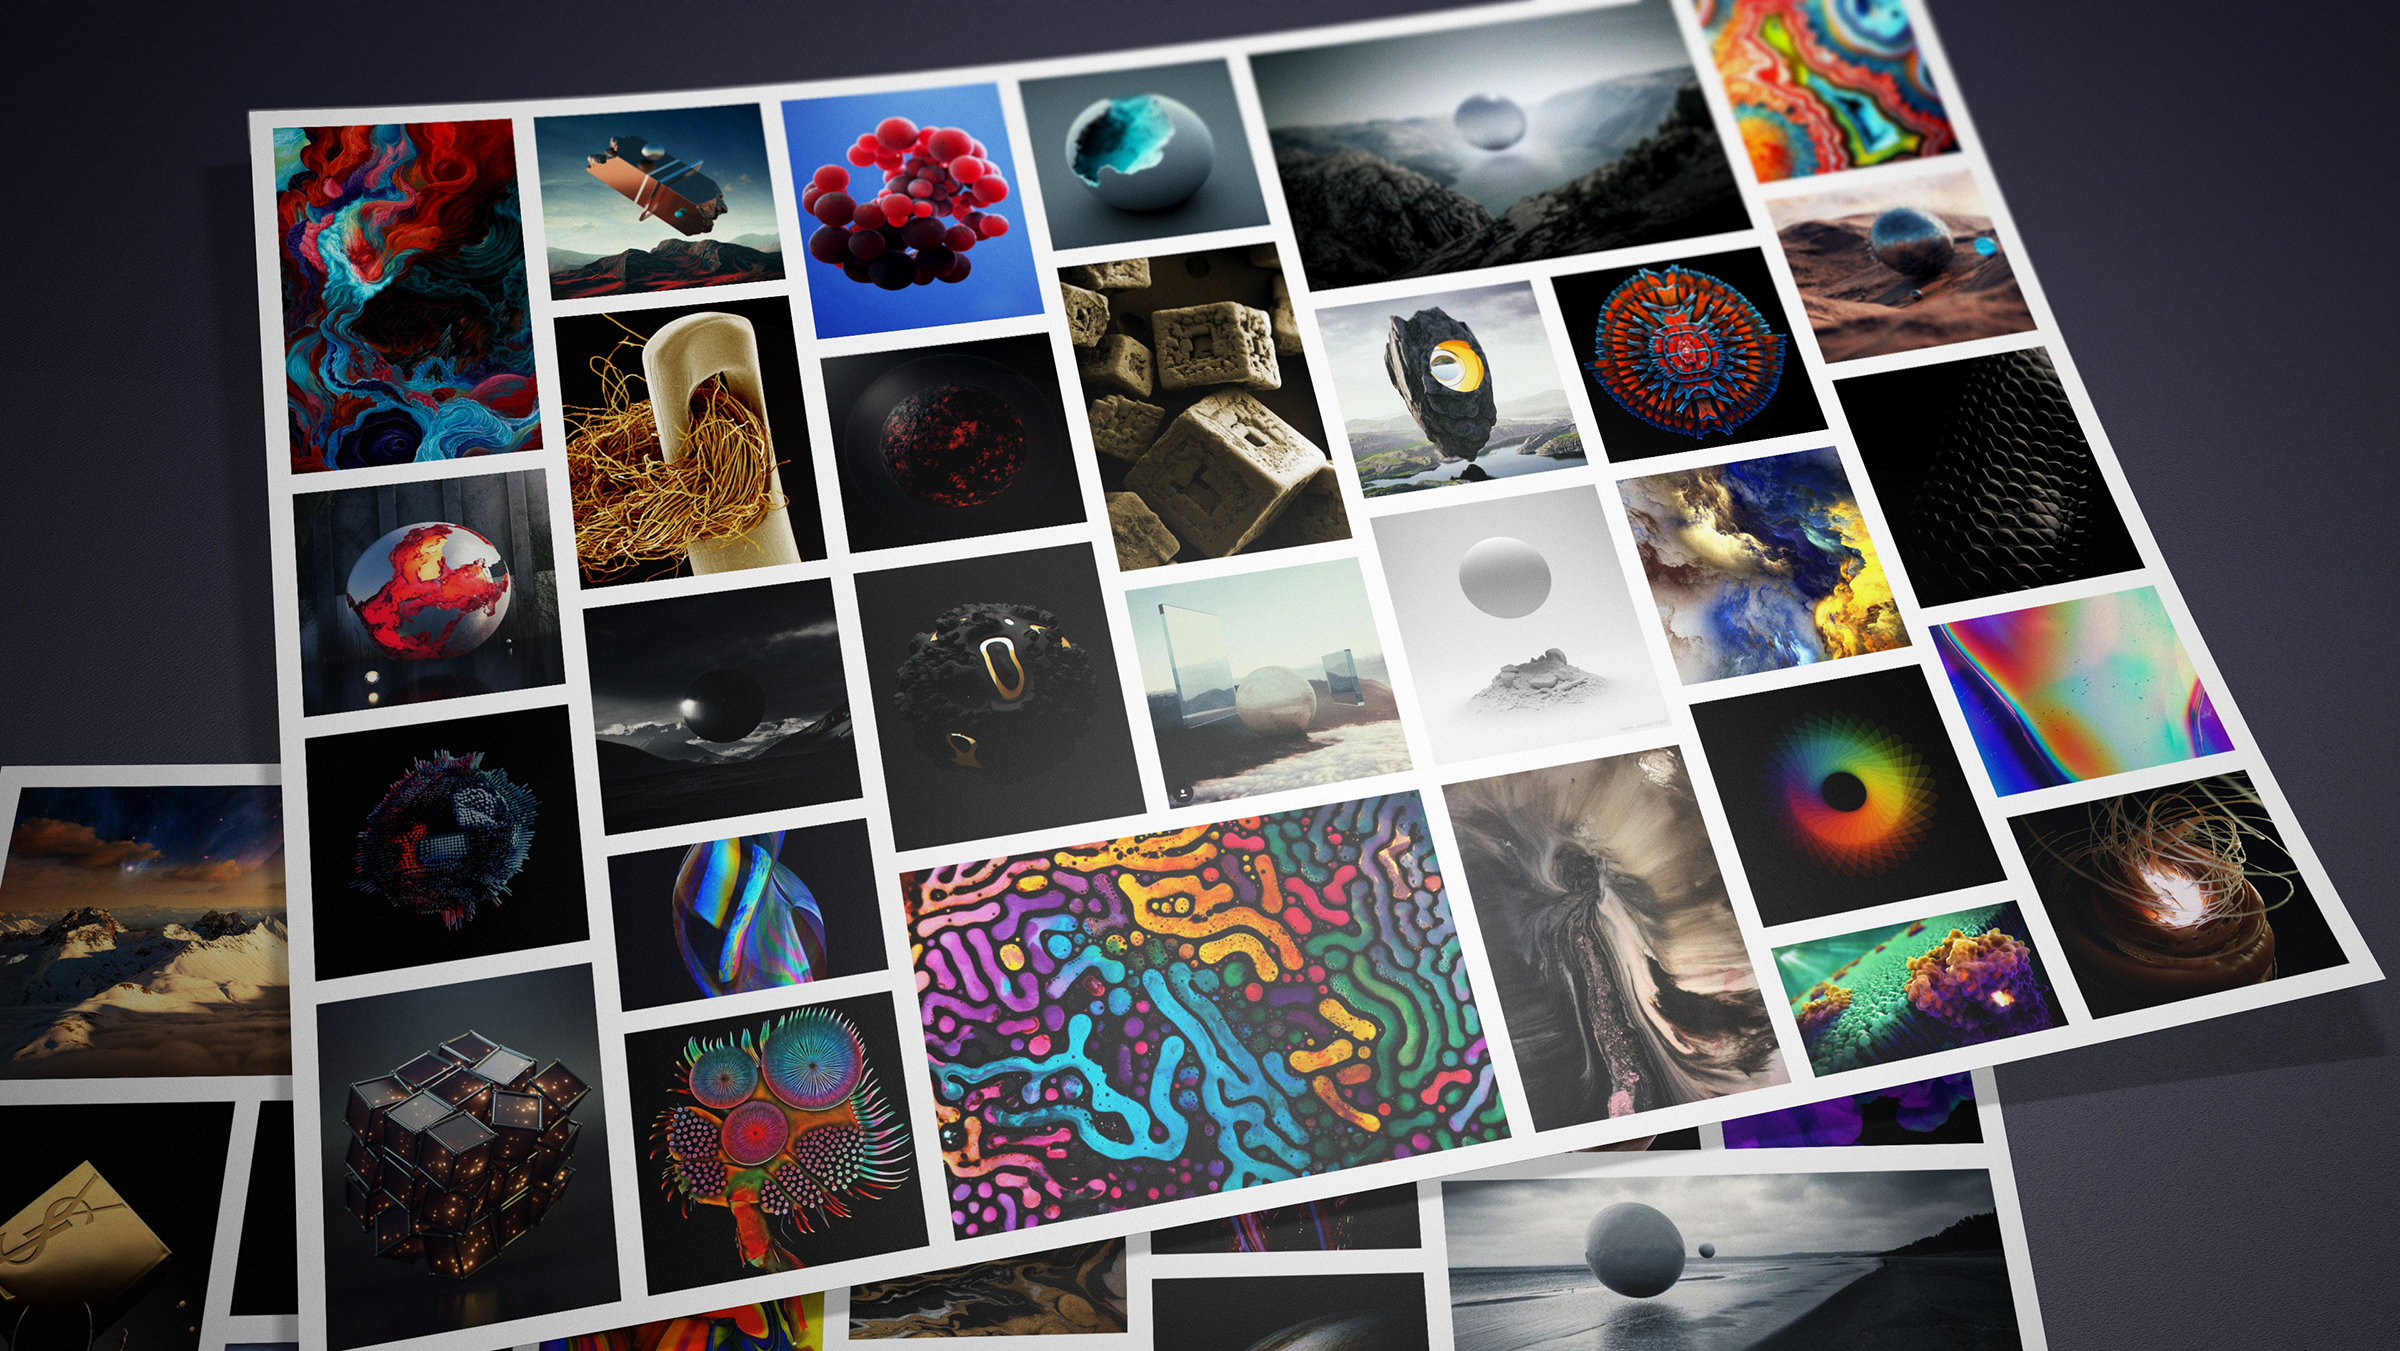 Our visual research explored all kinds of wondrous and imaginative artistic forms.